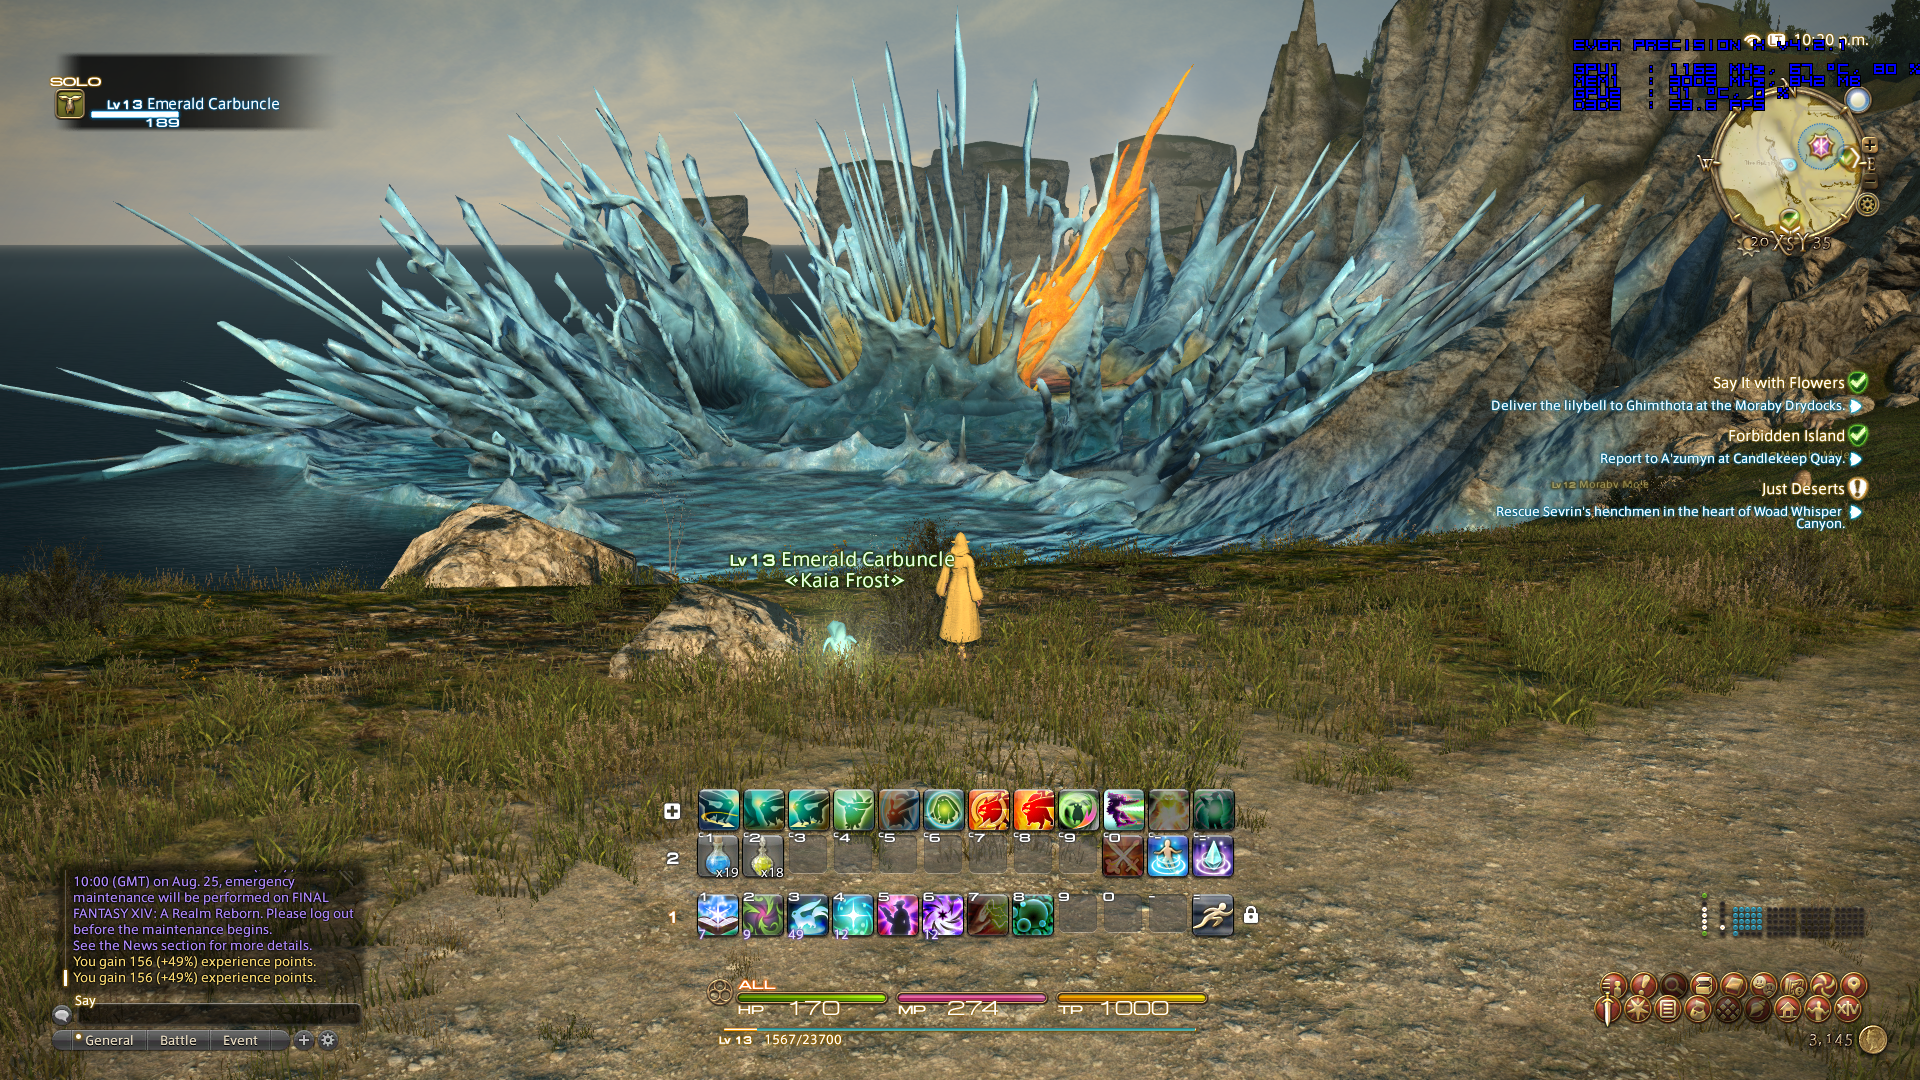 Final Fantasy XIV A Realm Reborn (Page 4) - EVGA Forums